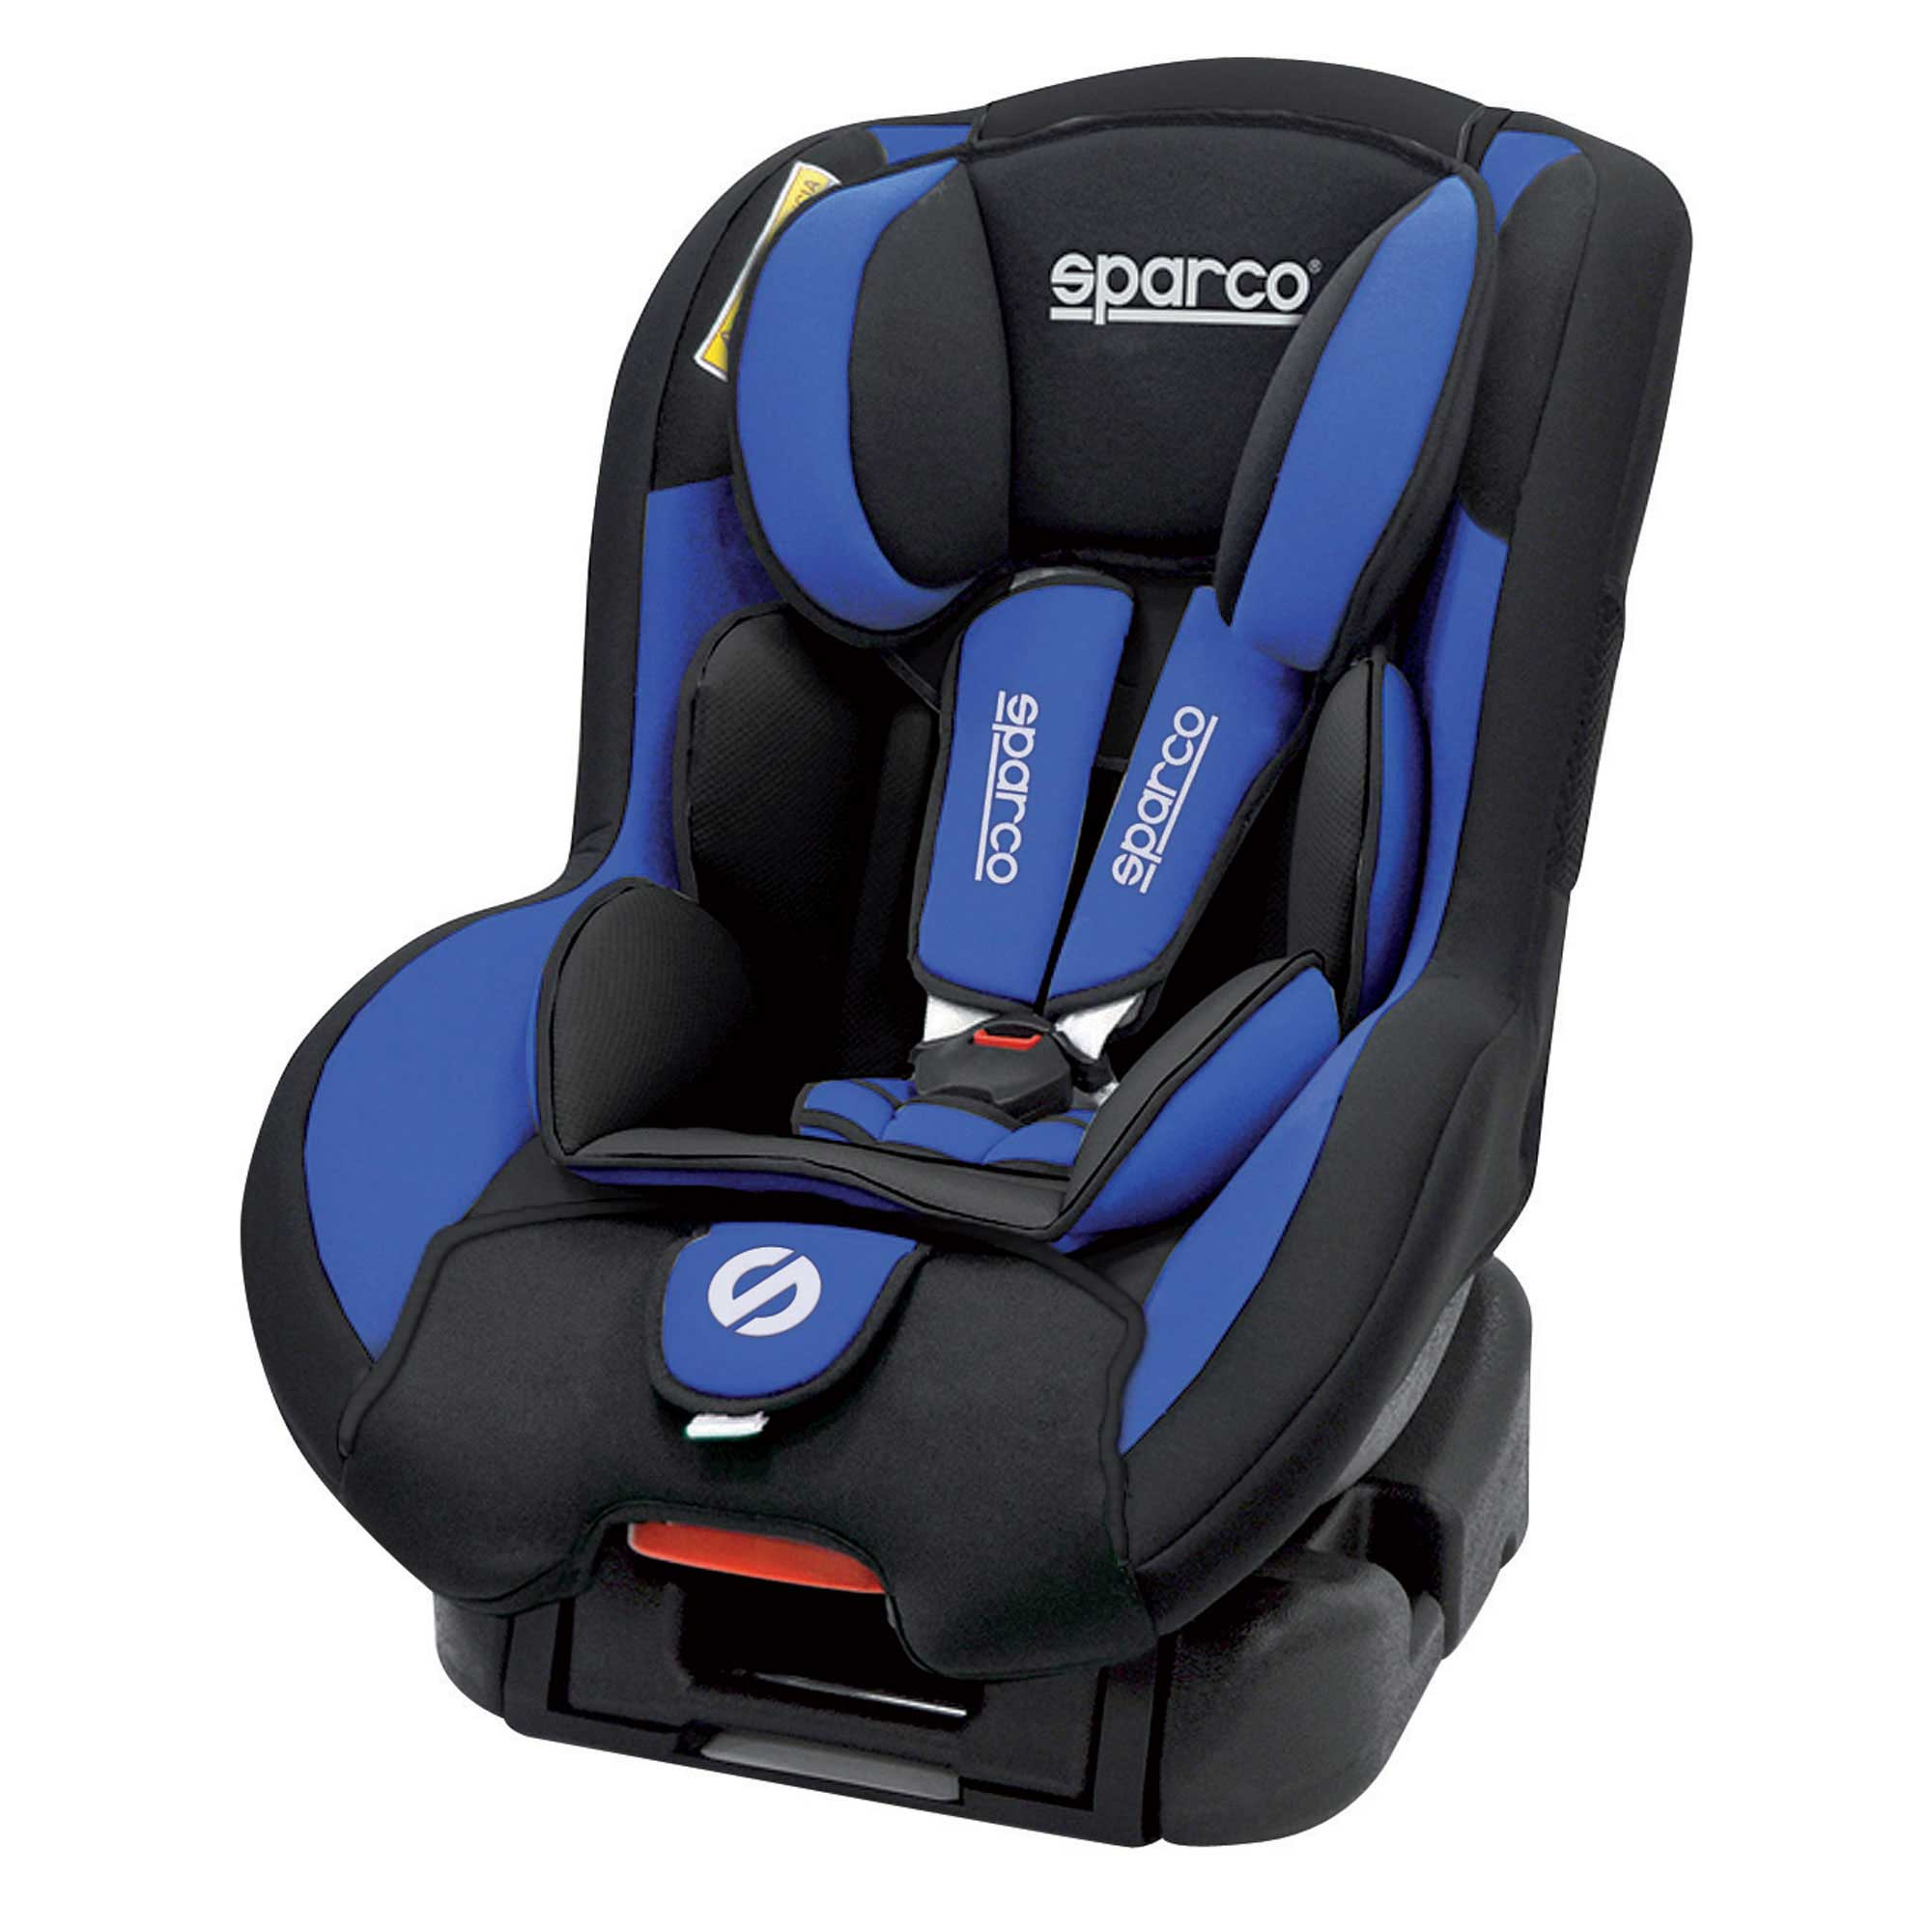 Sparco F500k Convertible Car Seat Blue 0 18kg